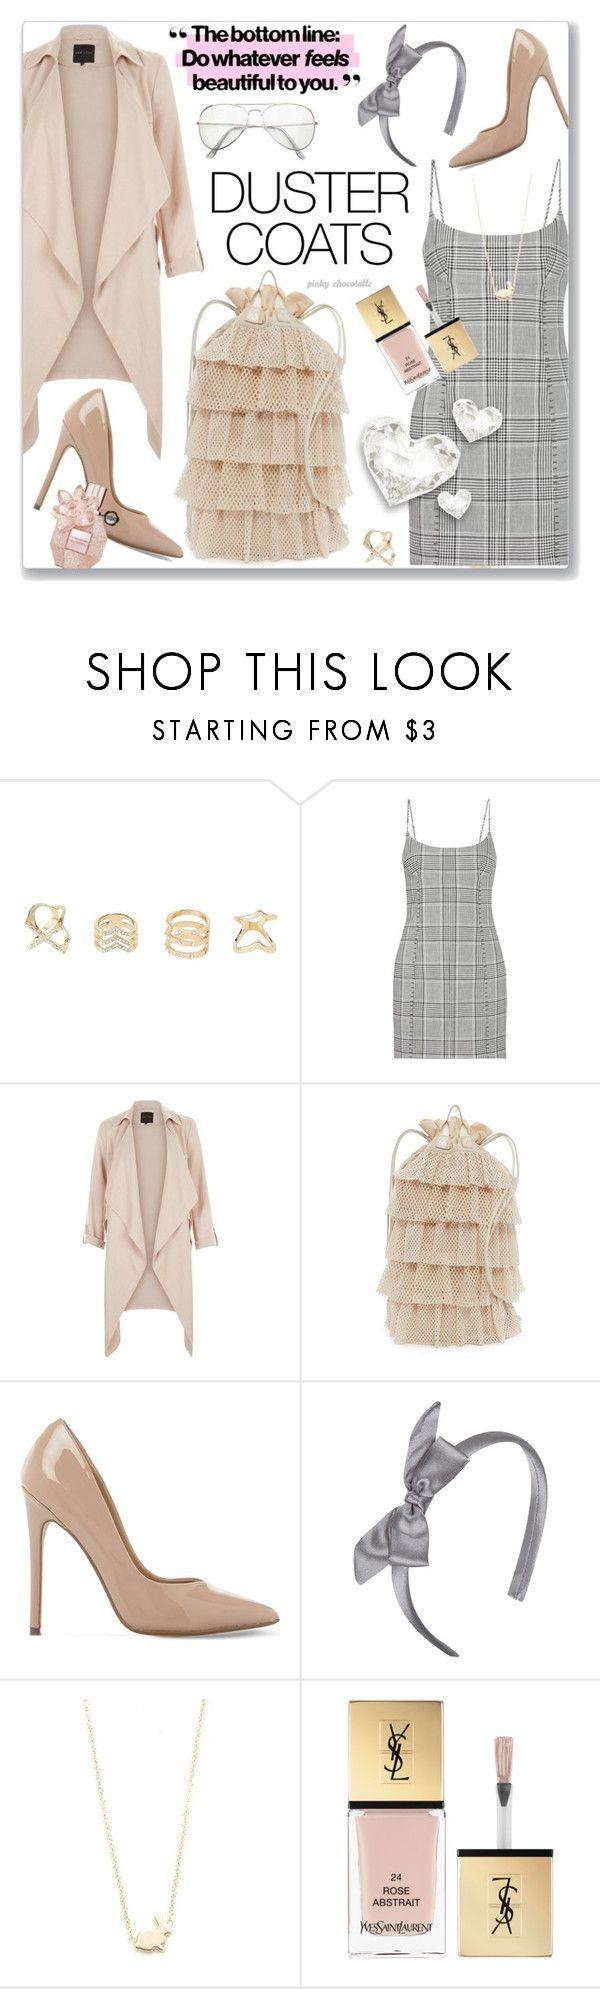 """""""Long Layers - Duster Coats: 02/09/17"""" by pinky-chocolatte ❤ liked on Polyvore featuring Charlotte Russe, Alexander Wang, New Look, Puma, Steve Madden, Forever 21, Ariel Gordon and Yves Saint Laurent"""